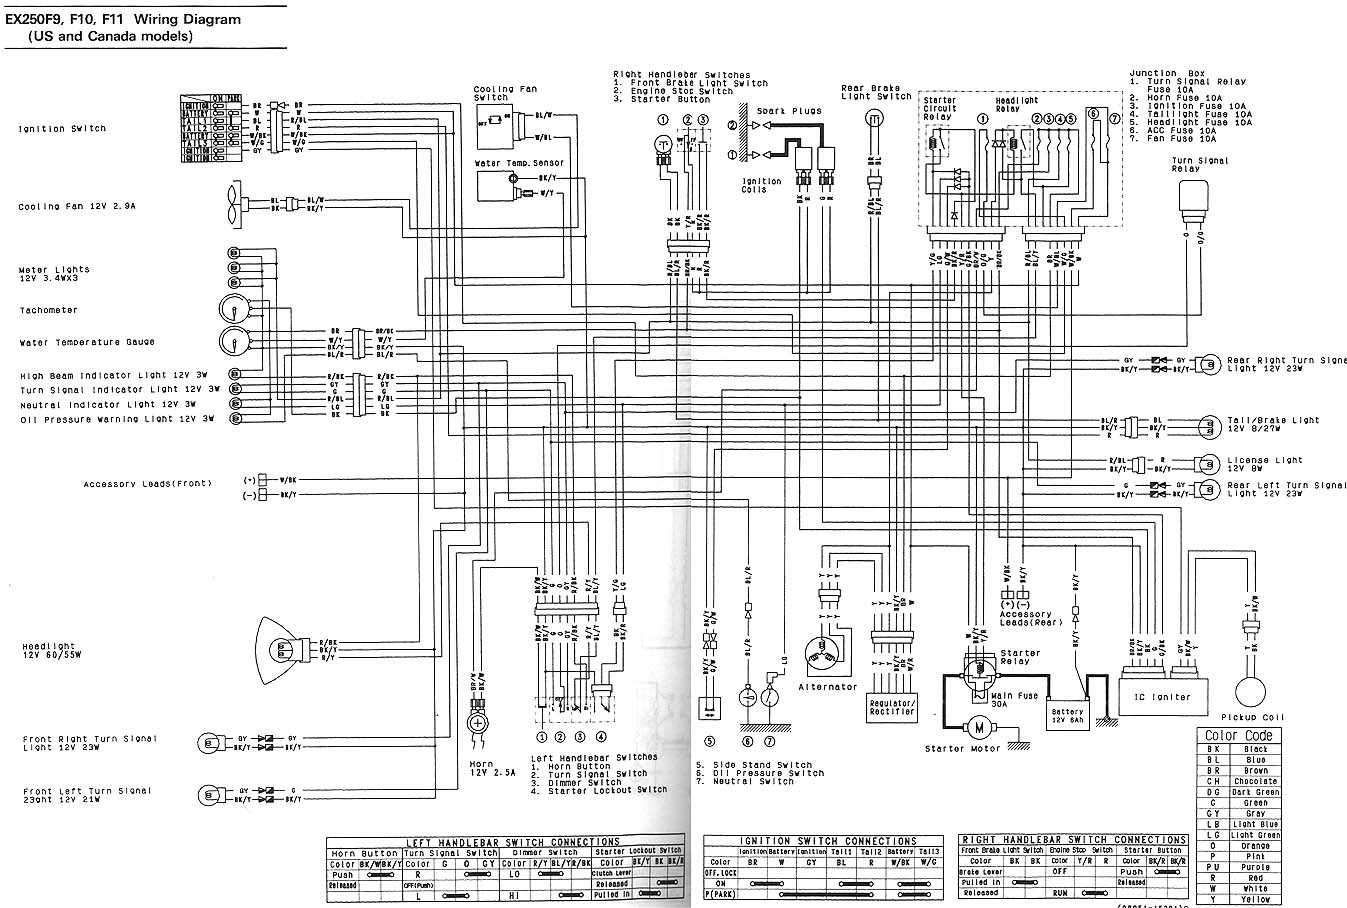 Kawasaki Zx7r Wiring Diagram | Wiring Liry on 2006 manco intruder ii wire diagram, full of a honda shadow 750 wire diagram, zx7r carburetor, 1.8t cooling diagram, 2000 750 ninja diagram,